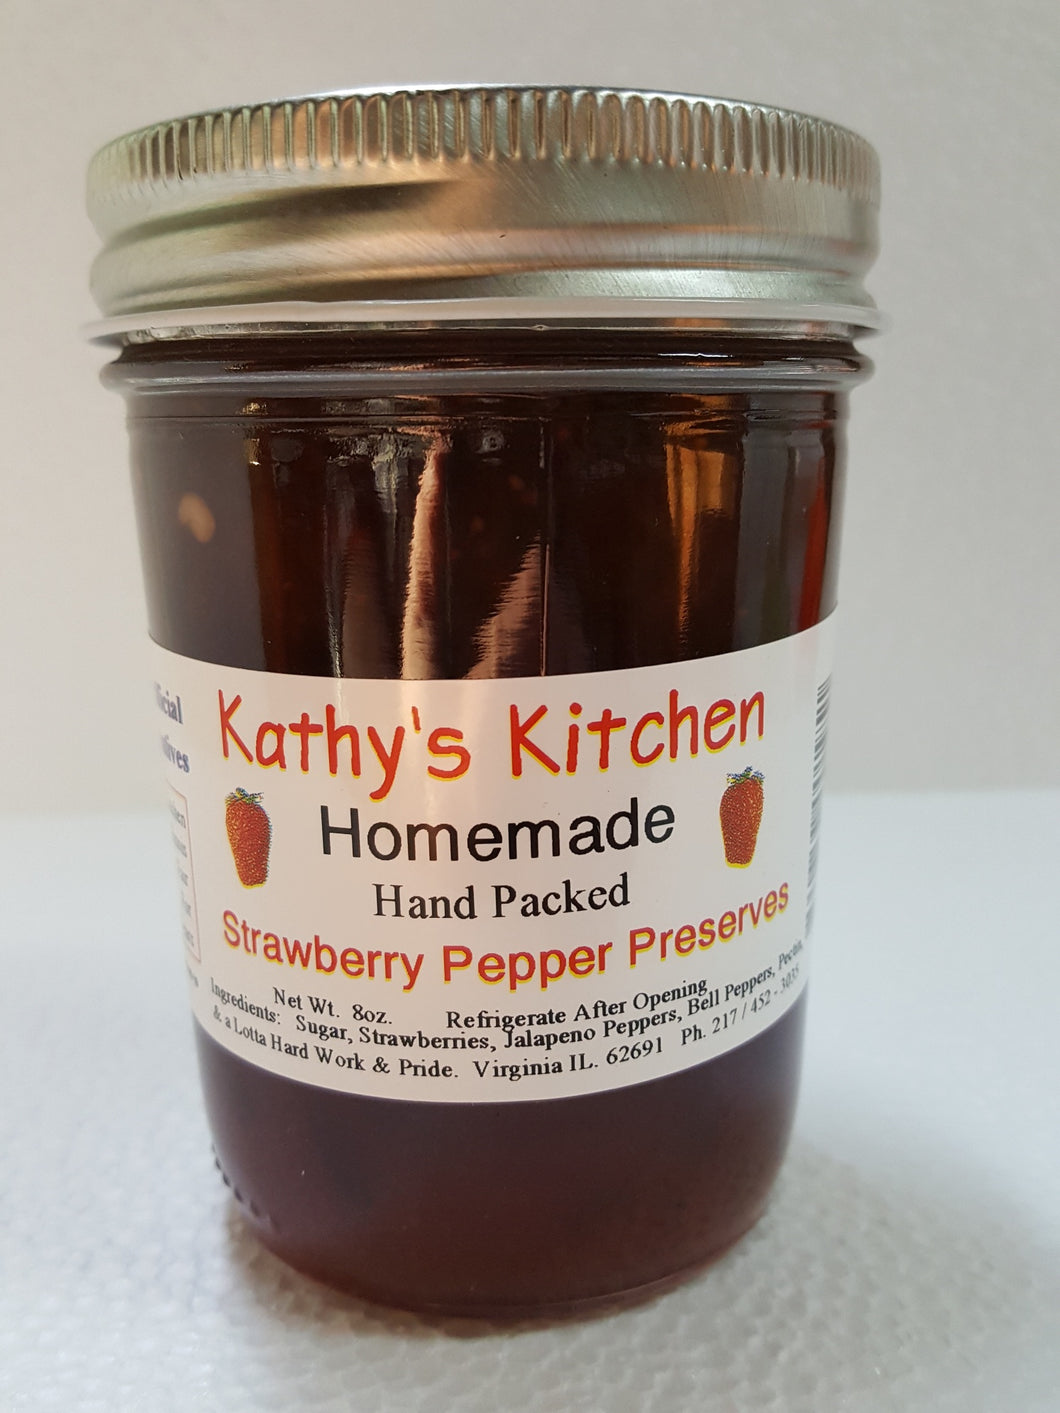 Strawberry Pepper Preserves